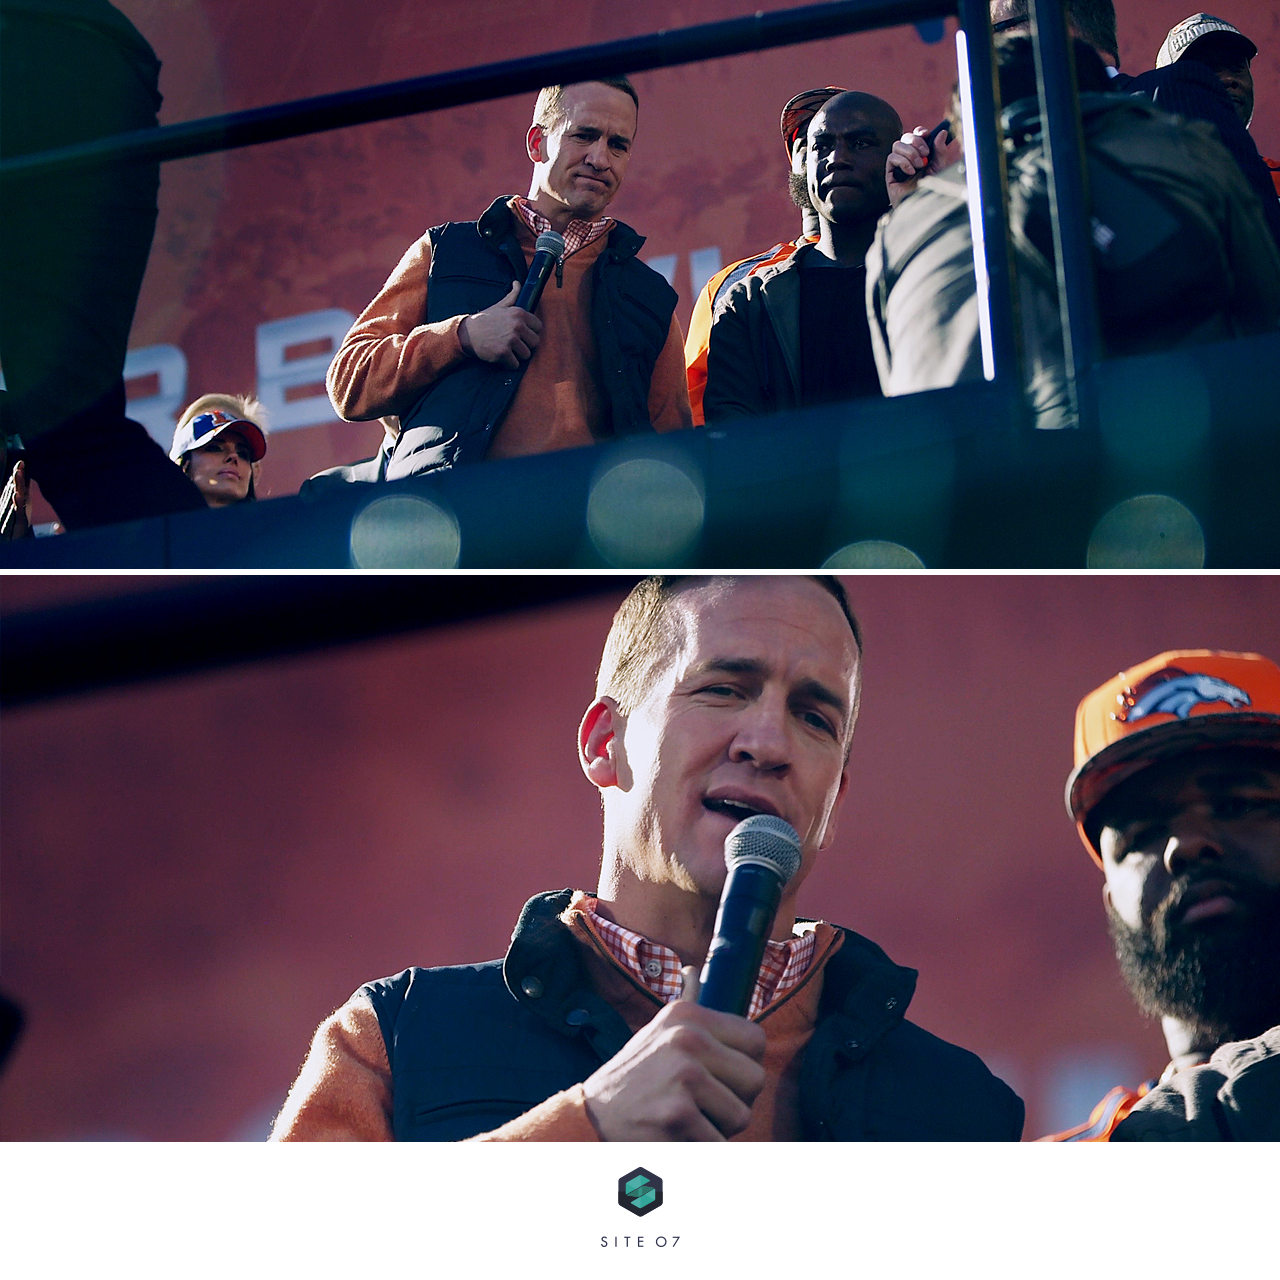 Payton Manning | Denver Broncos Super Bowl Celebration, 2016